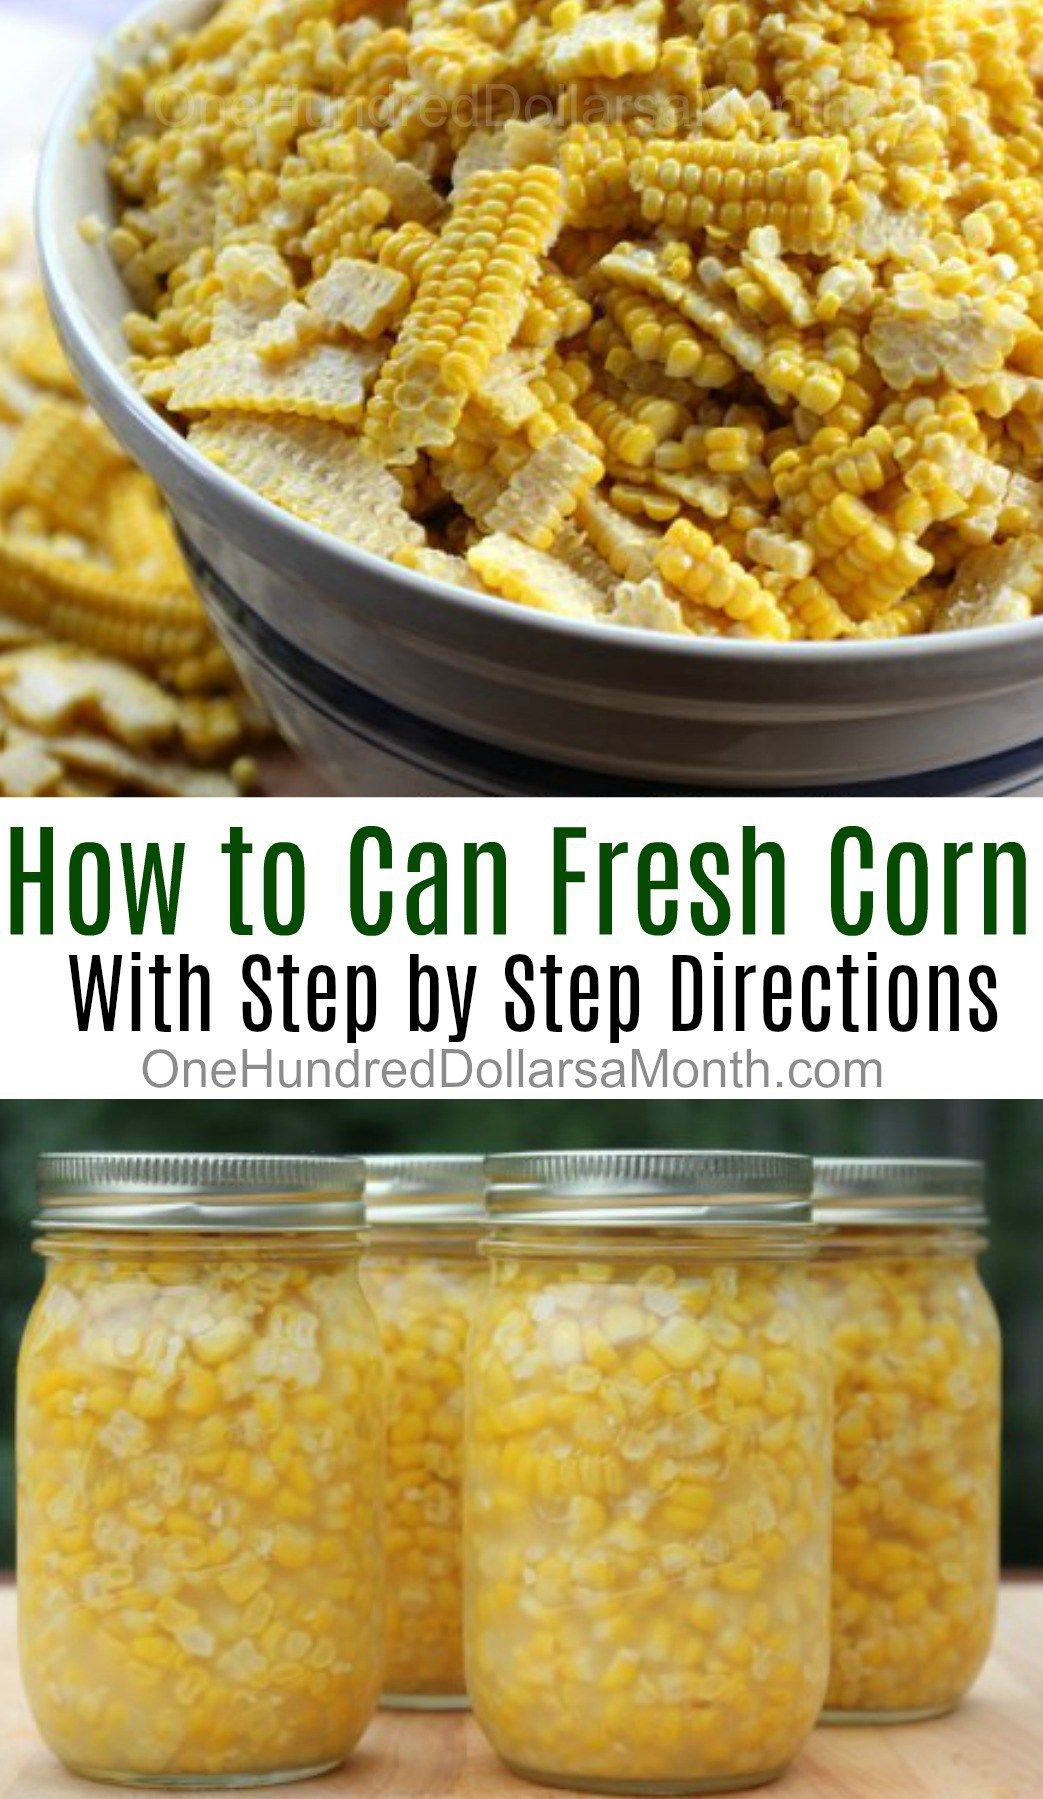 Corn canned at home Need a recipe